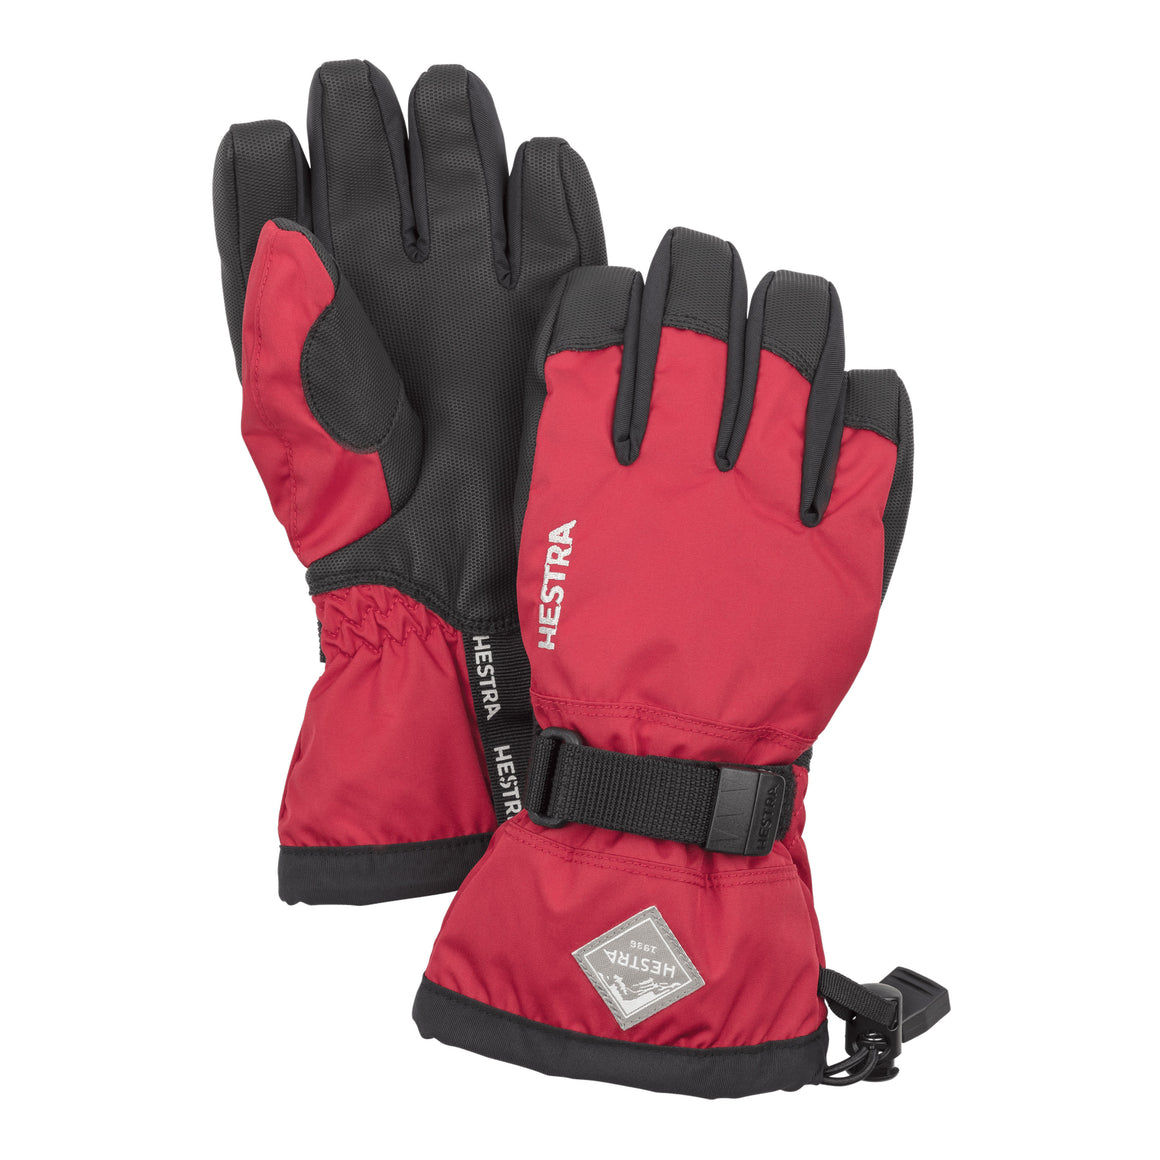 Gauntlet CZone Jr Ski Gloves for Kids in Bright Red